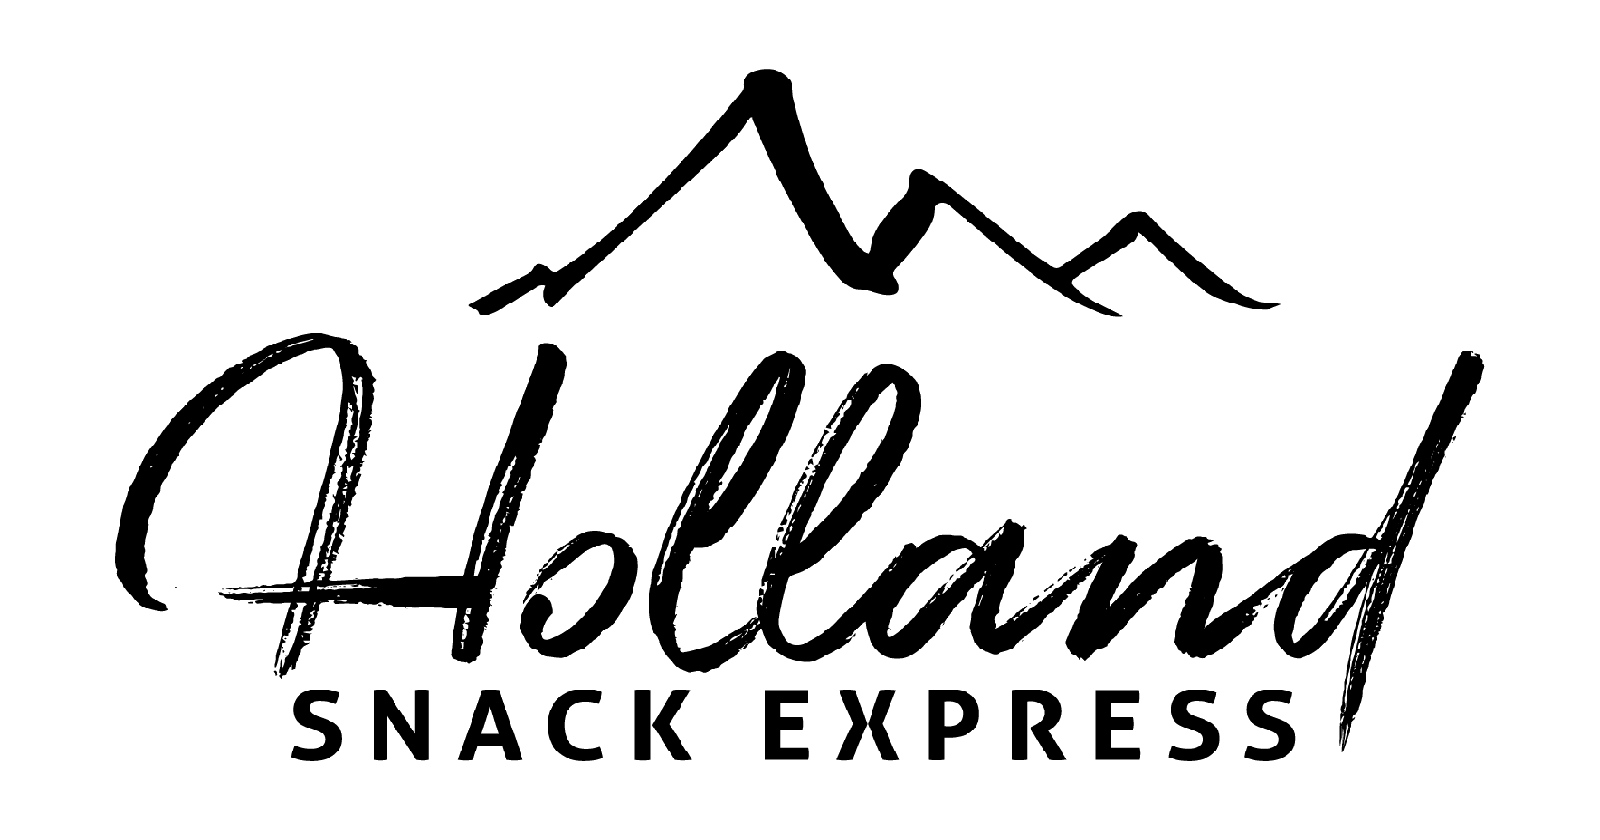 Holland Snack Express